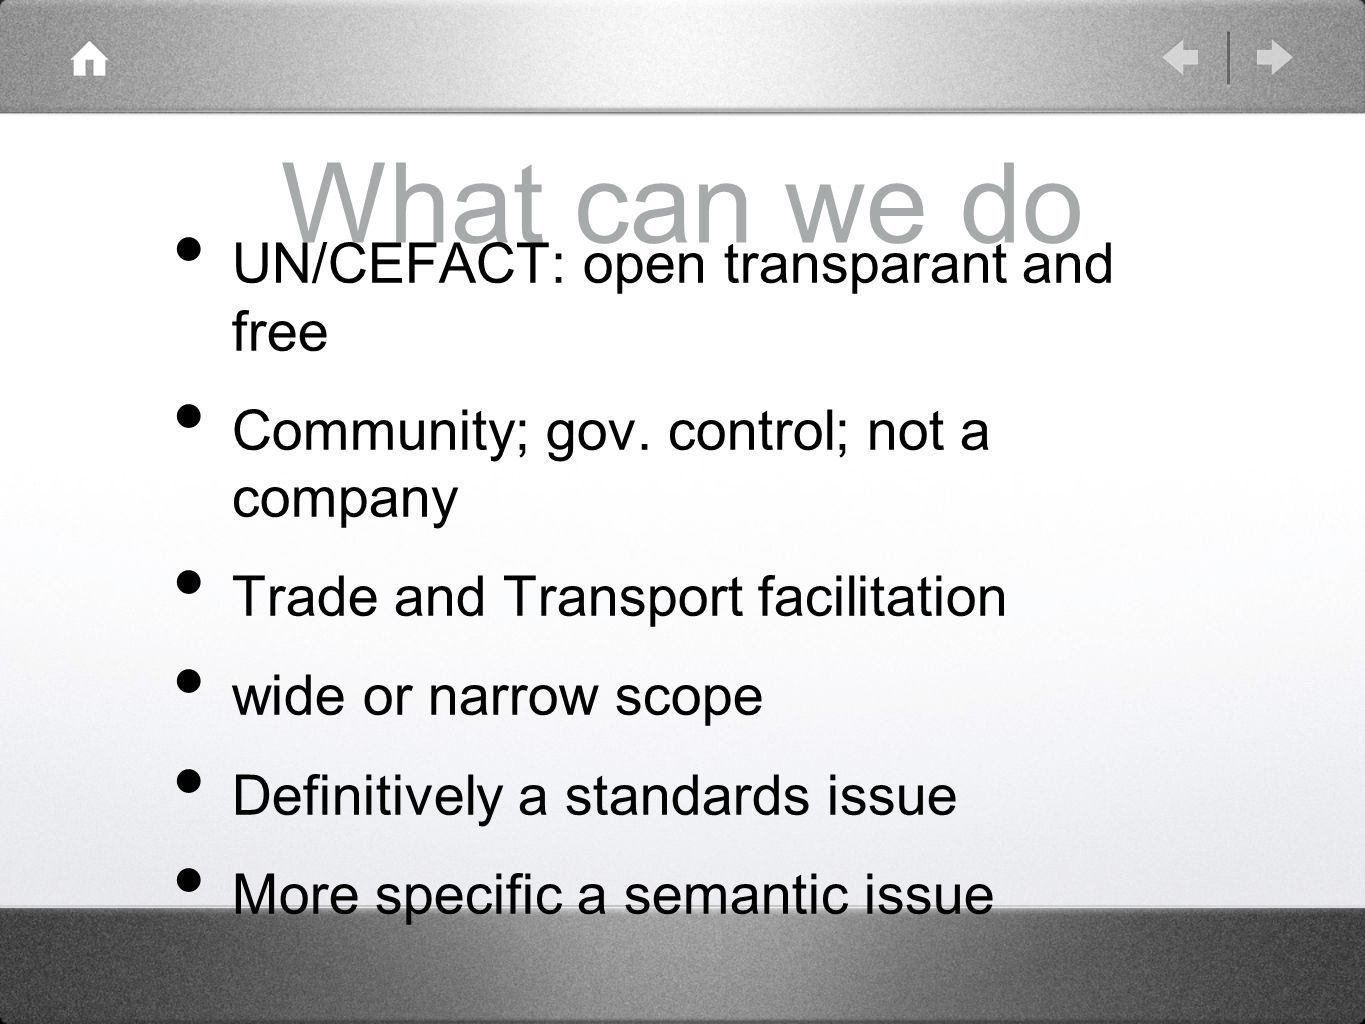 What can we do UN/CEFACT: open transparant and free